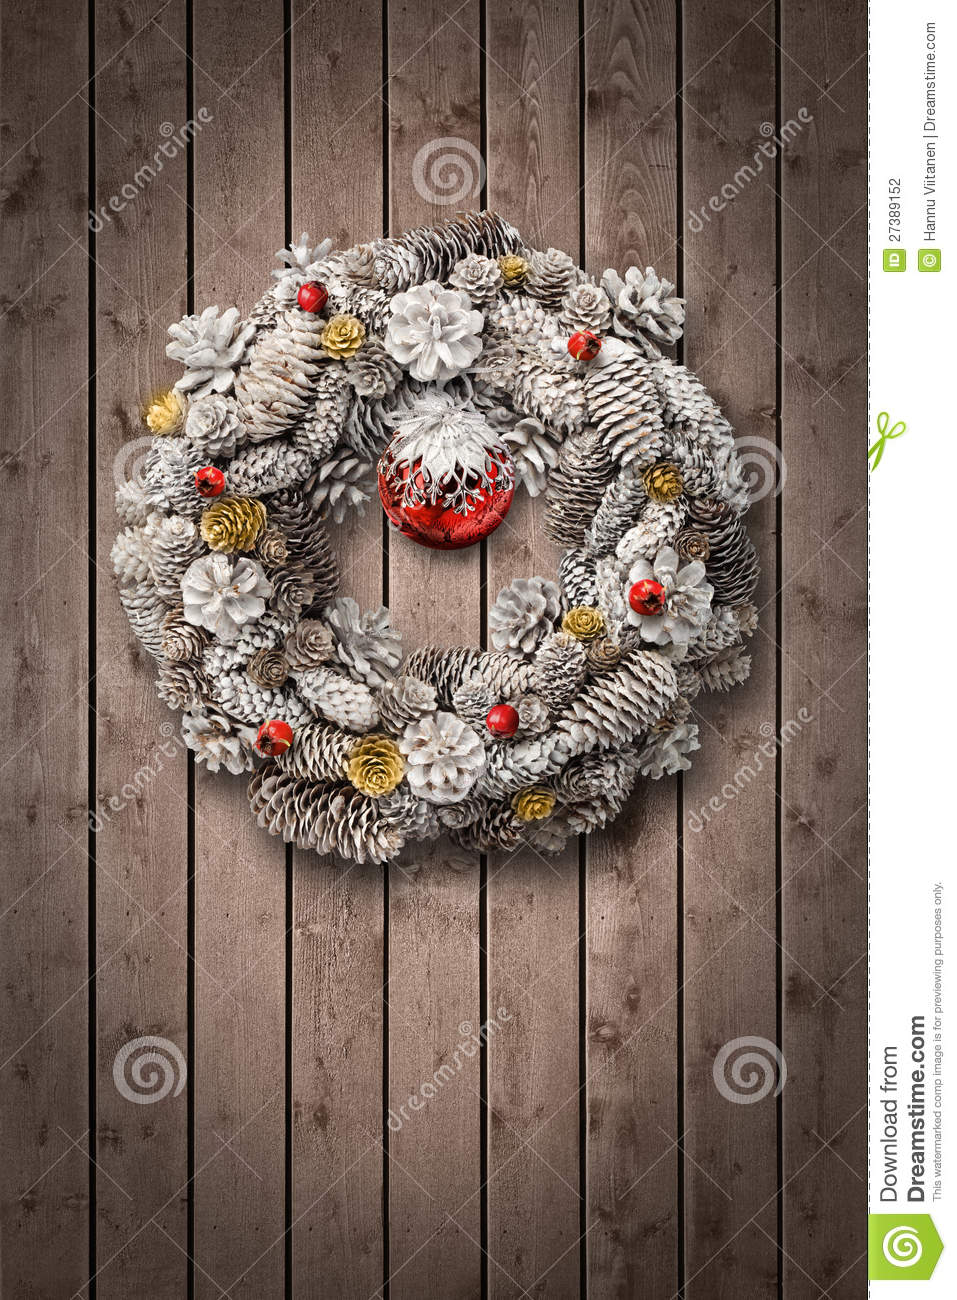 White christmas wreath on wooden door stock photo image